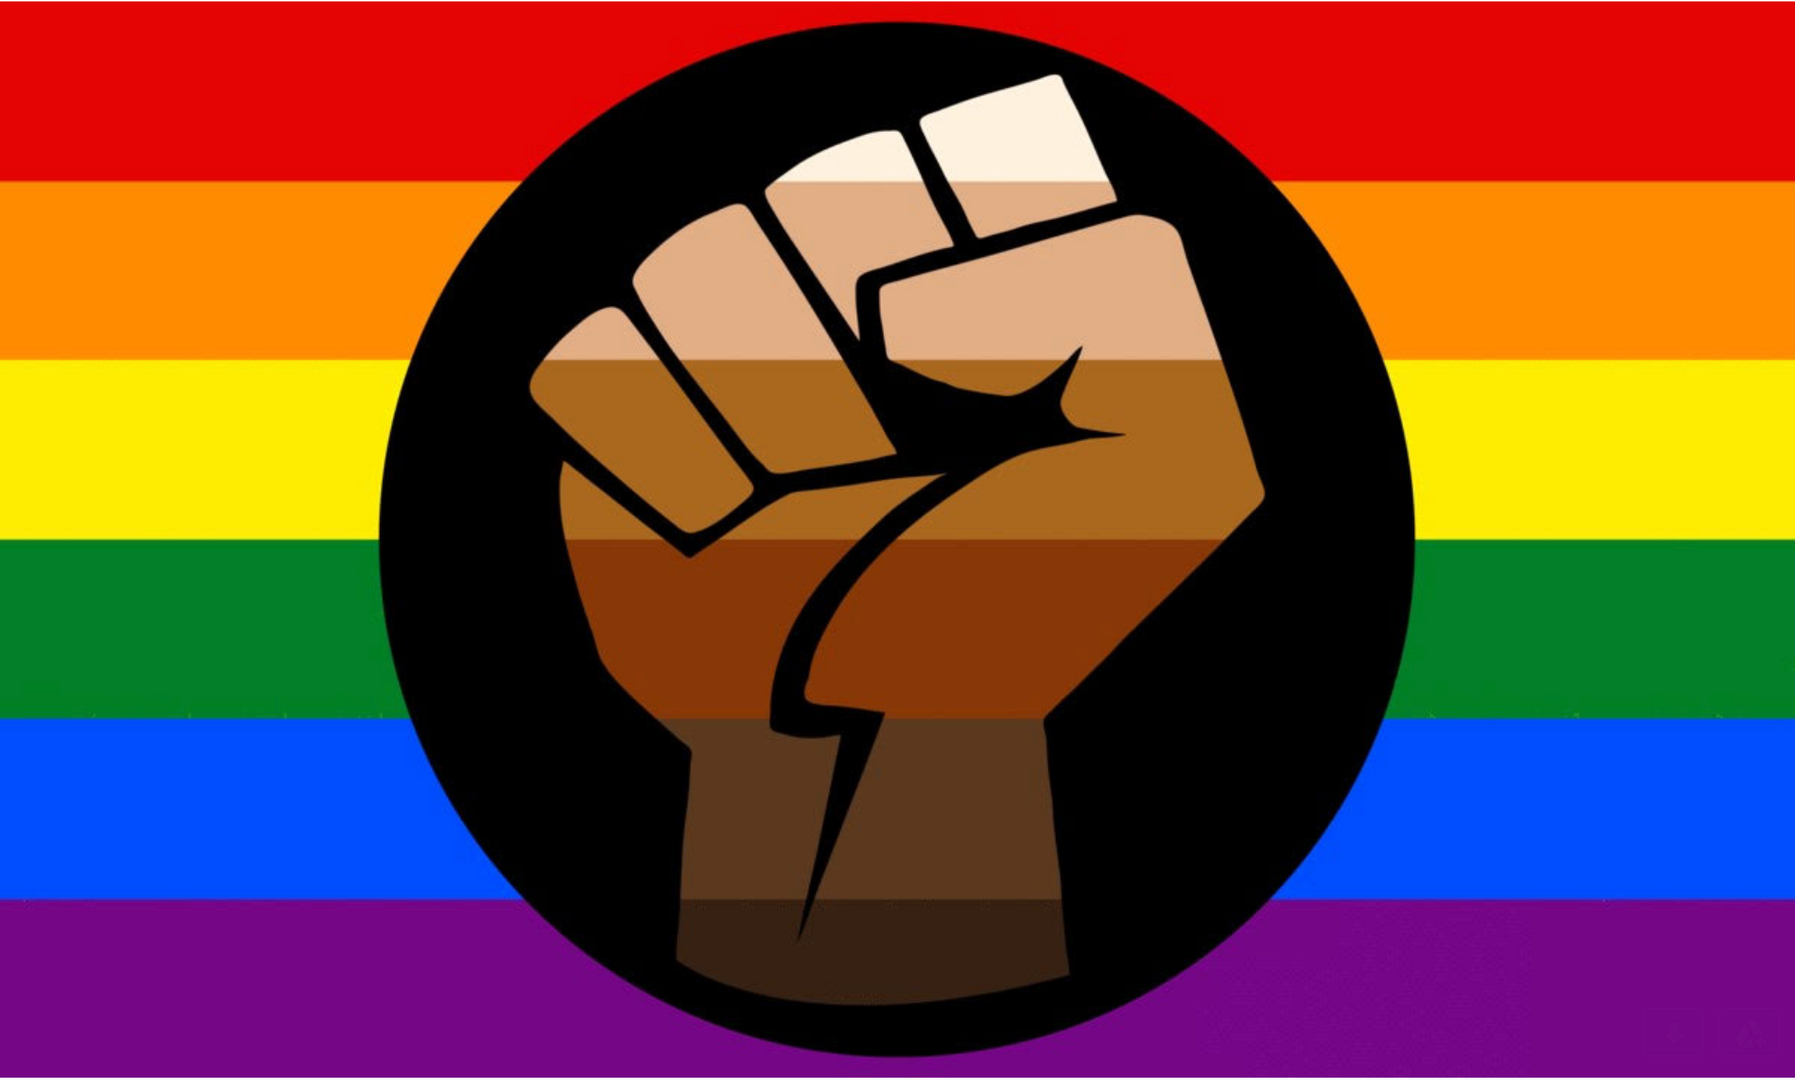 Pride Flag Supporting Black Lives Matter